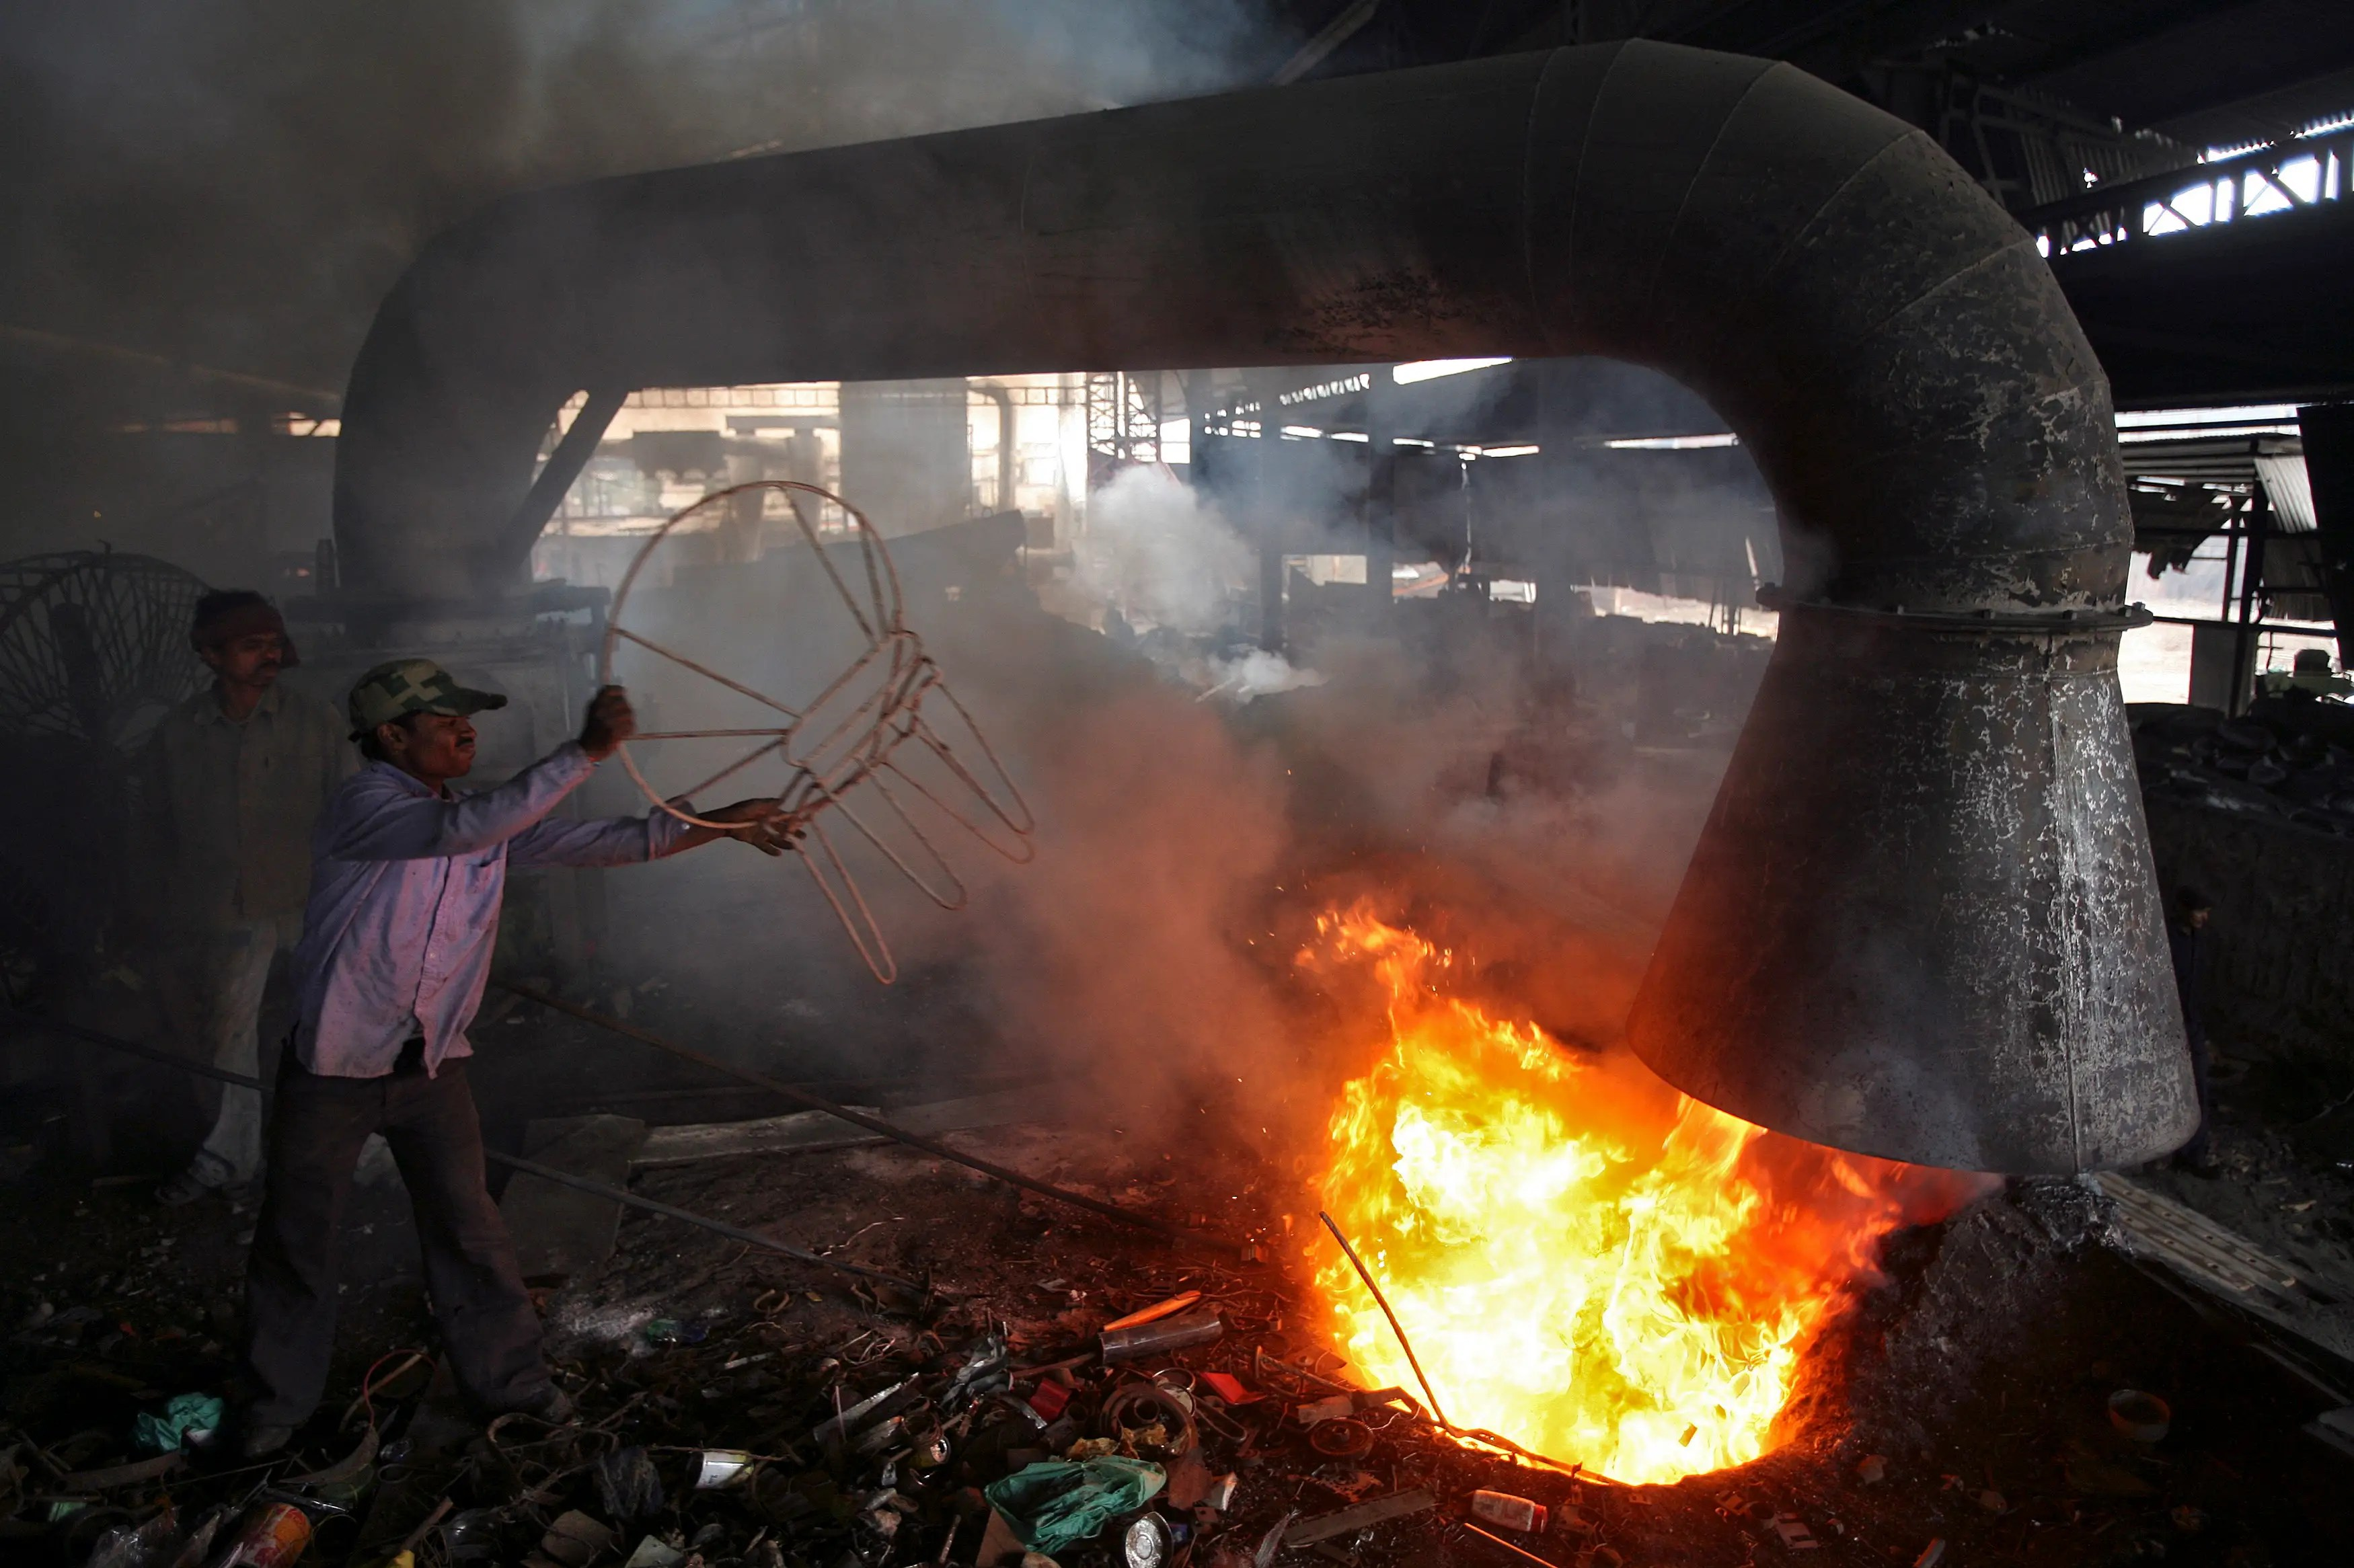 steel chair in guwahati baby doll high chairs india 39s garbage pickers photos business insider